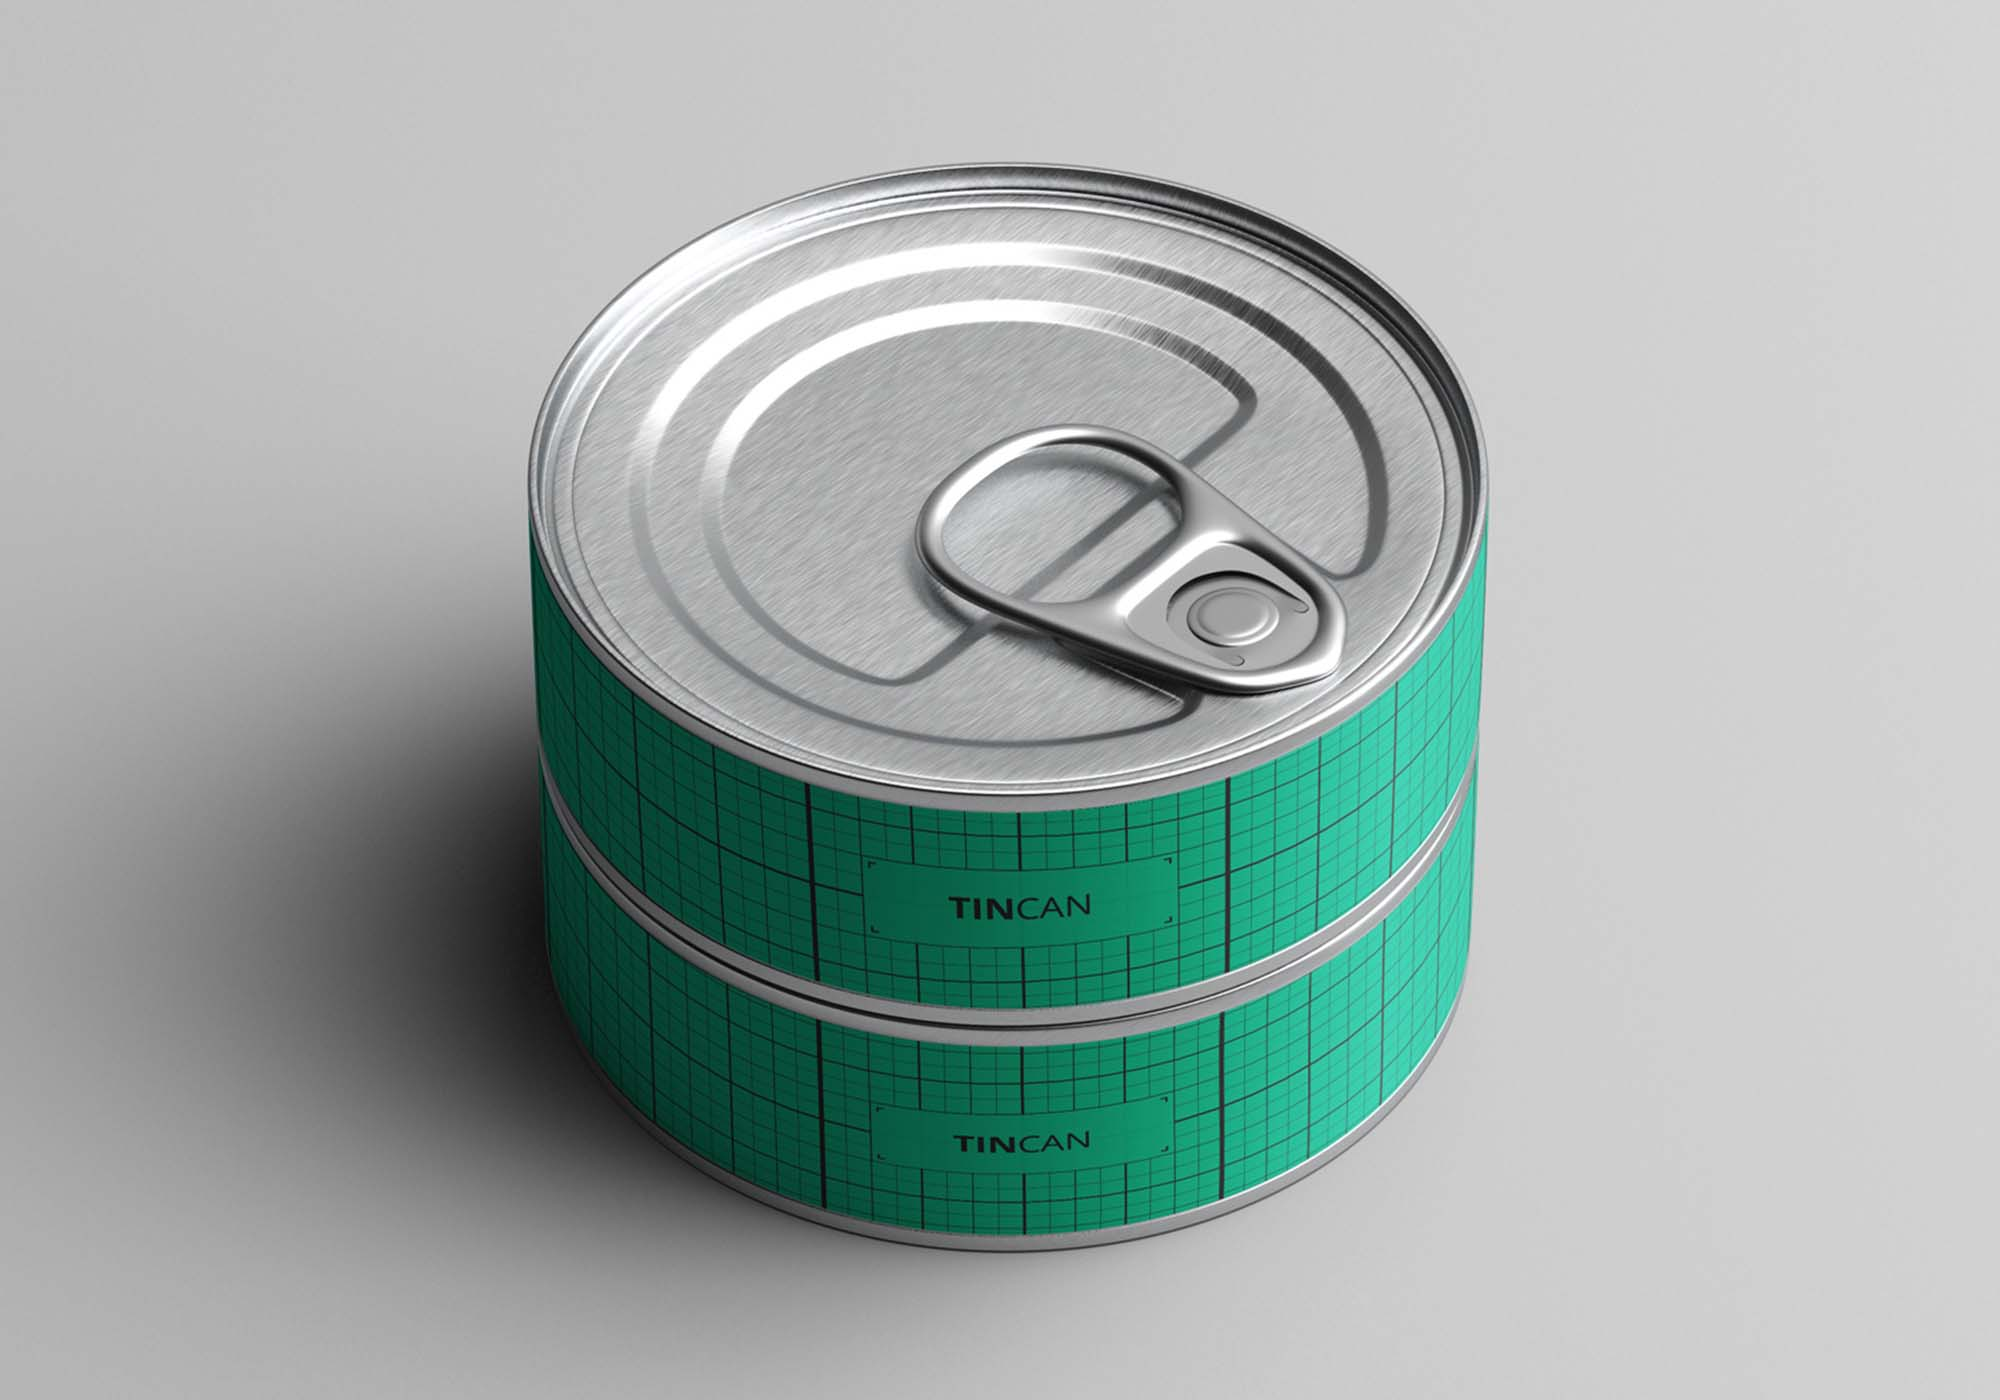 Short Tin Can Mockup